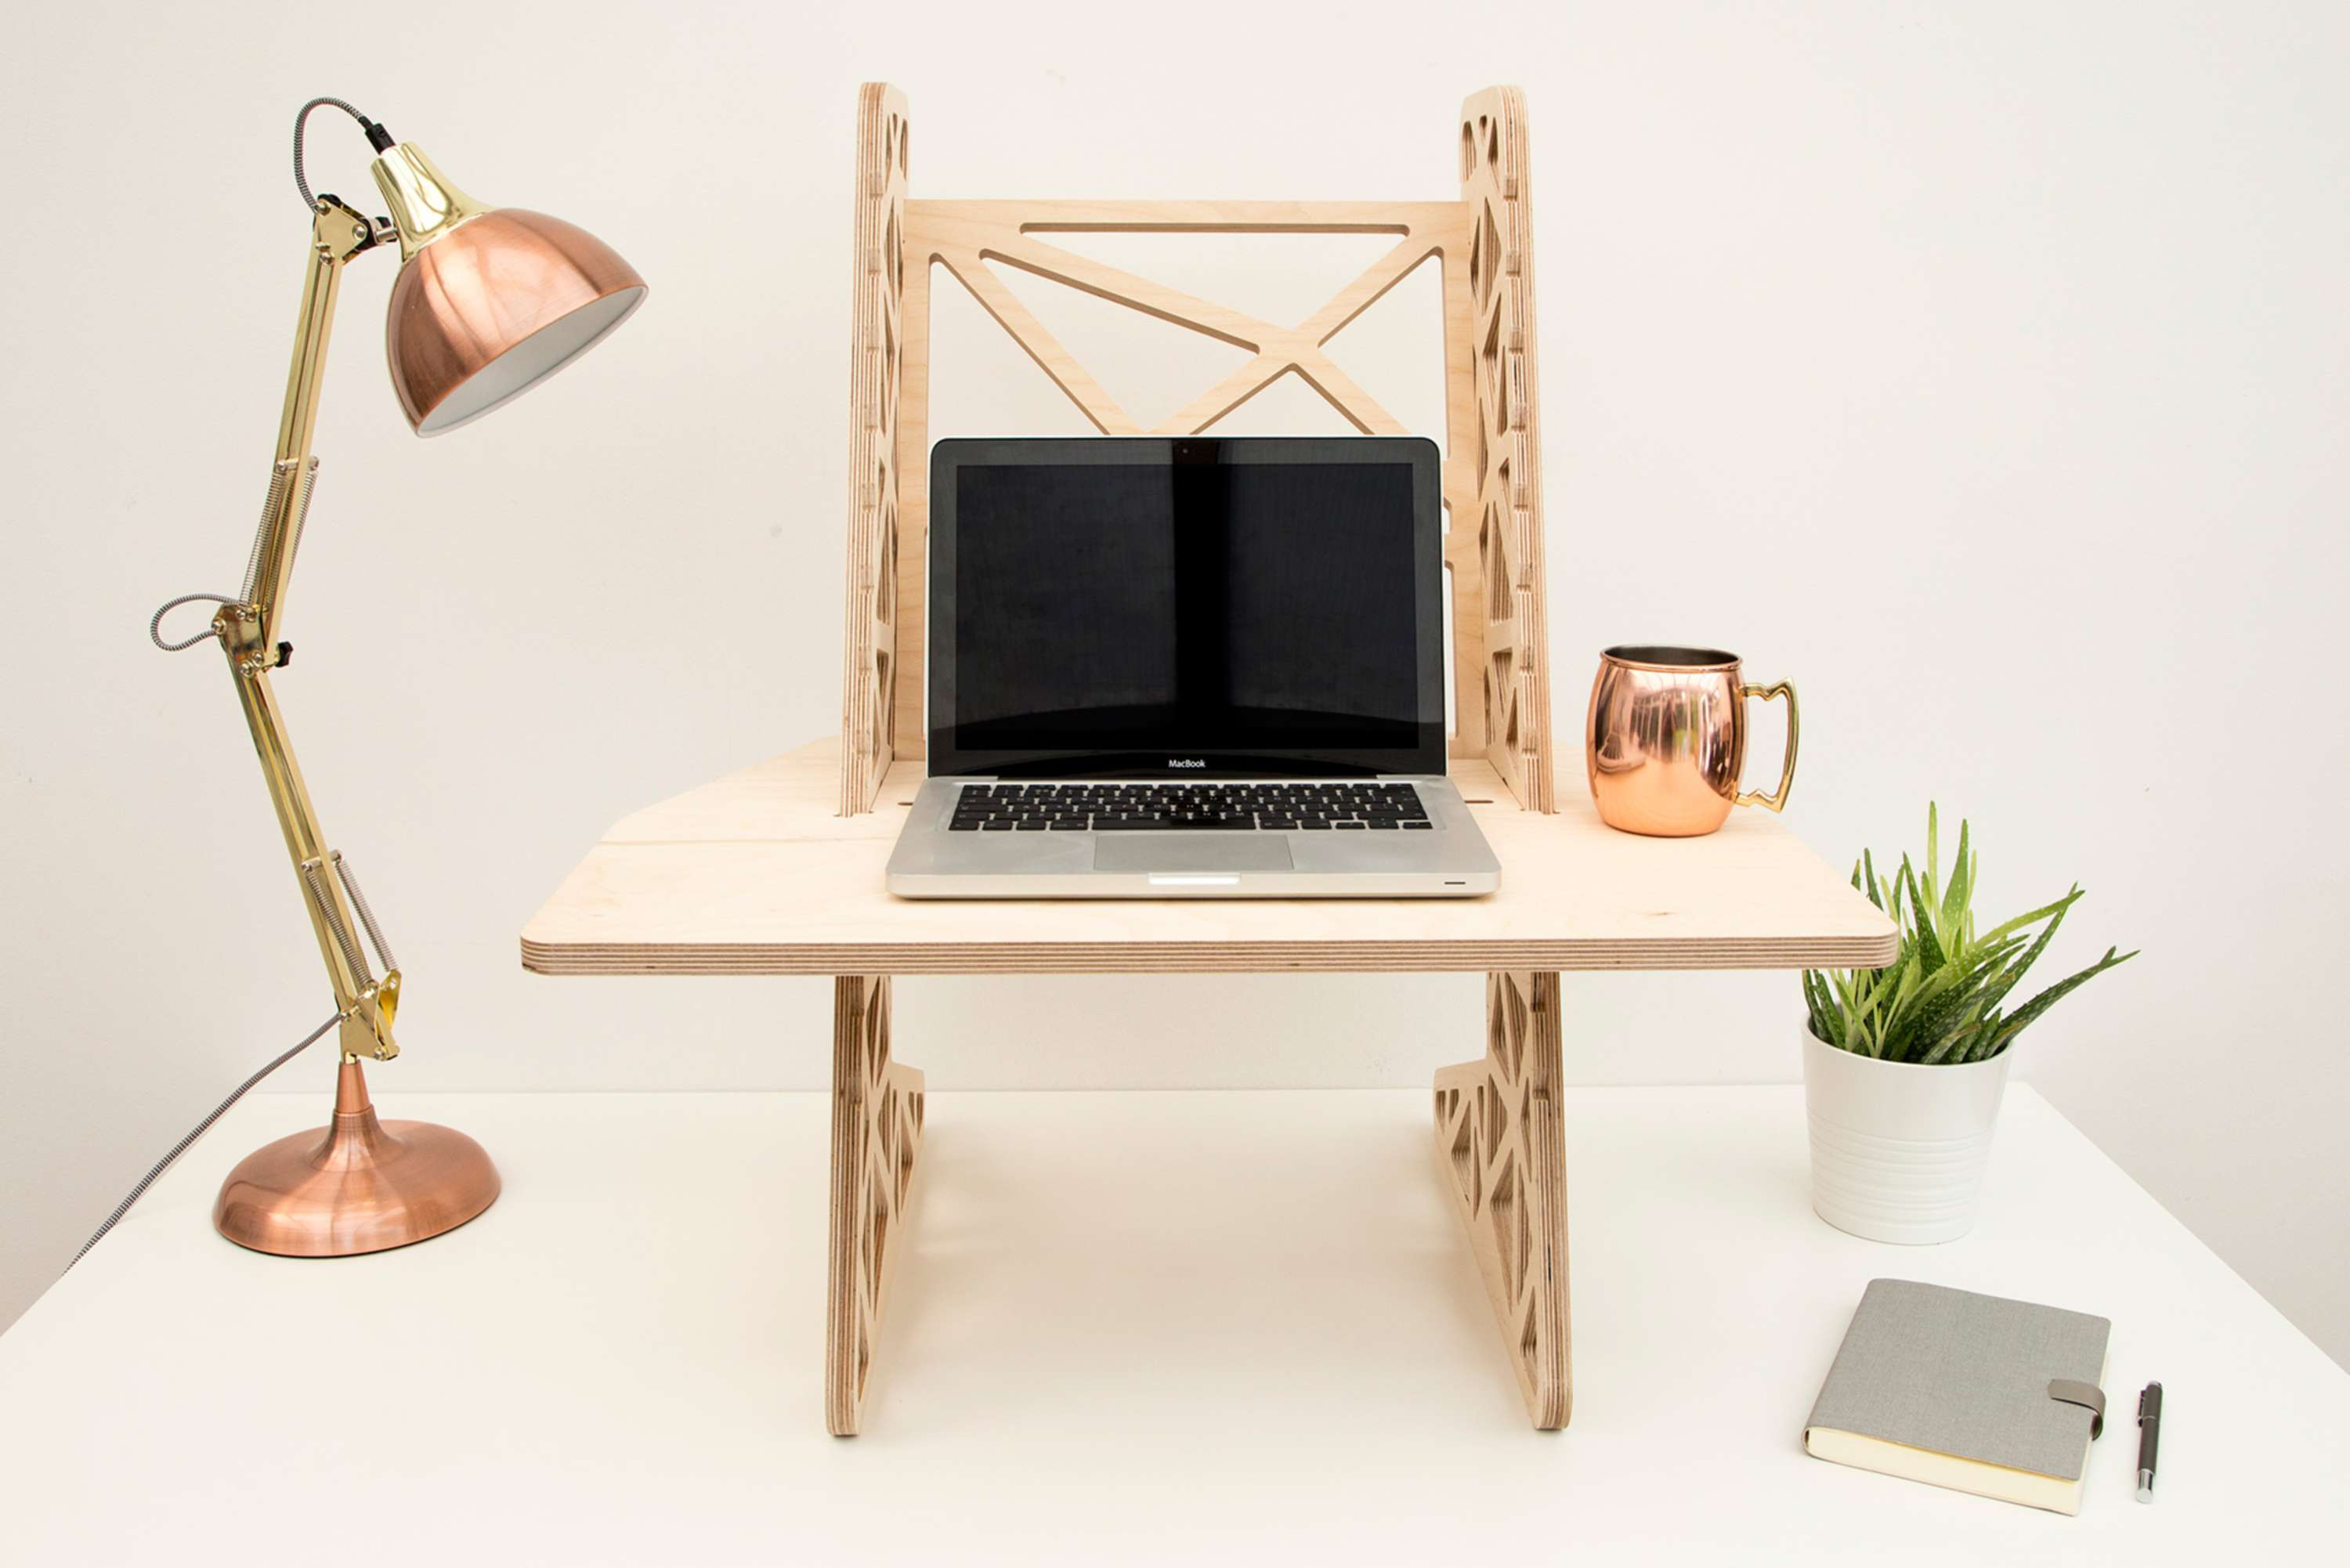 Design Develop And Ion Of Standing Desk Converters Portable Laptop Stands For Helmm Produced In The Uk Using Sustainable Plywood Precision Cnc Cut